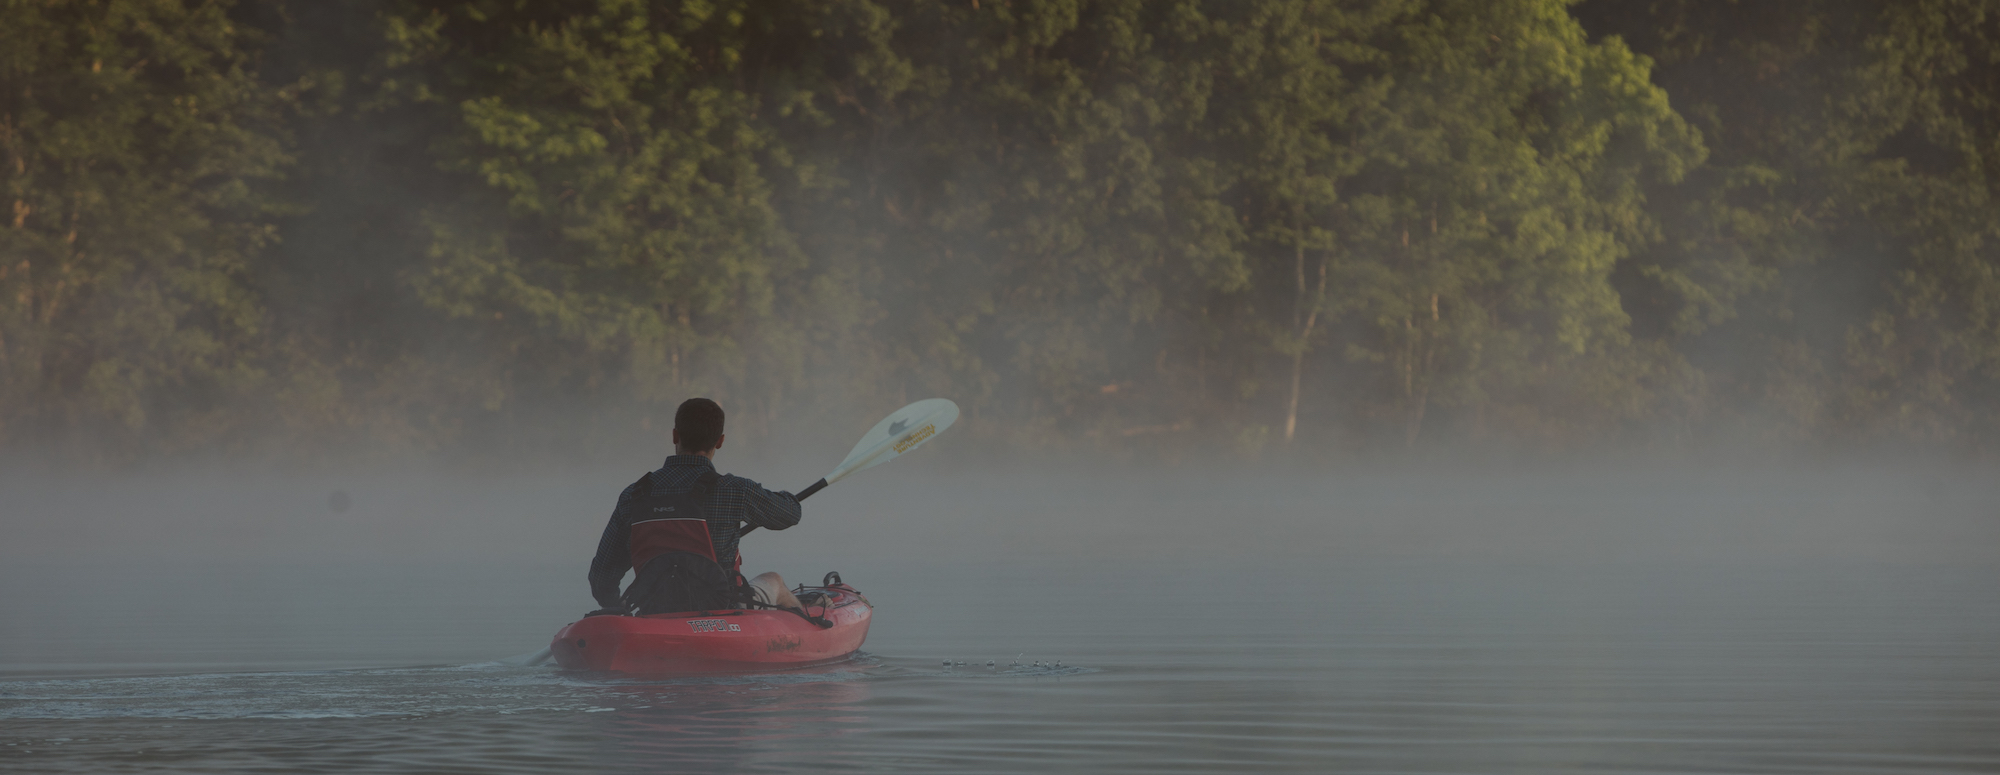 Paddling the Pacolet